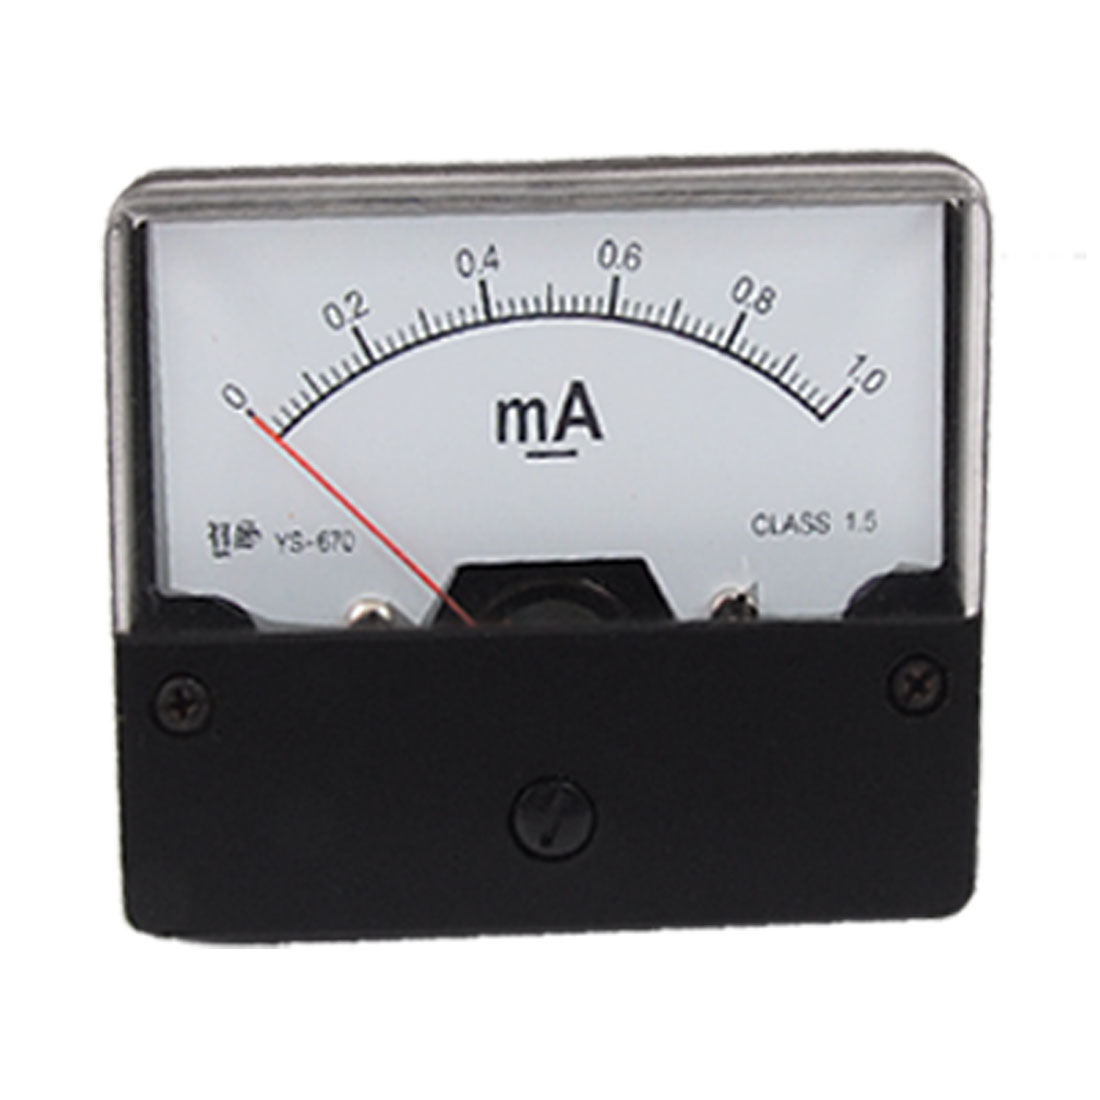 YS-670 Panel Mounted DC 0-1mA Current Meter Amperemeter Measuring Tool